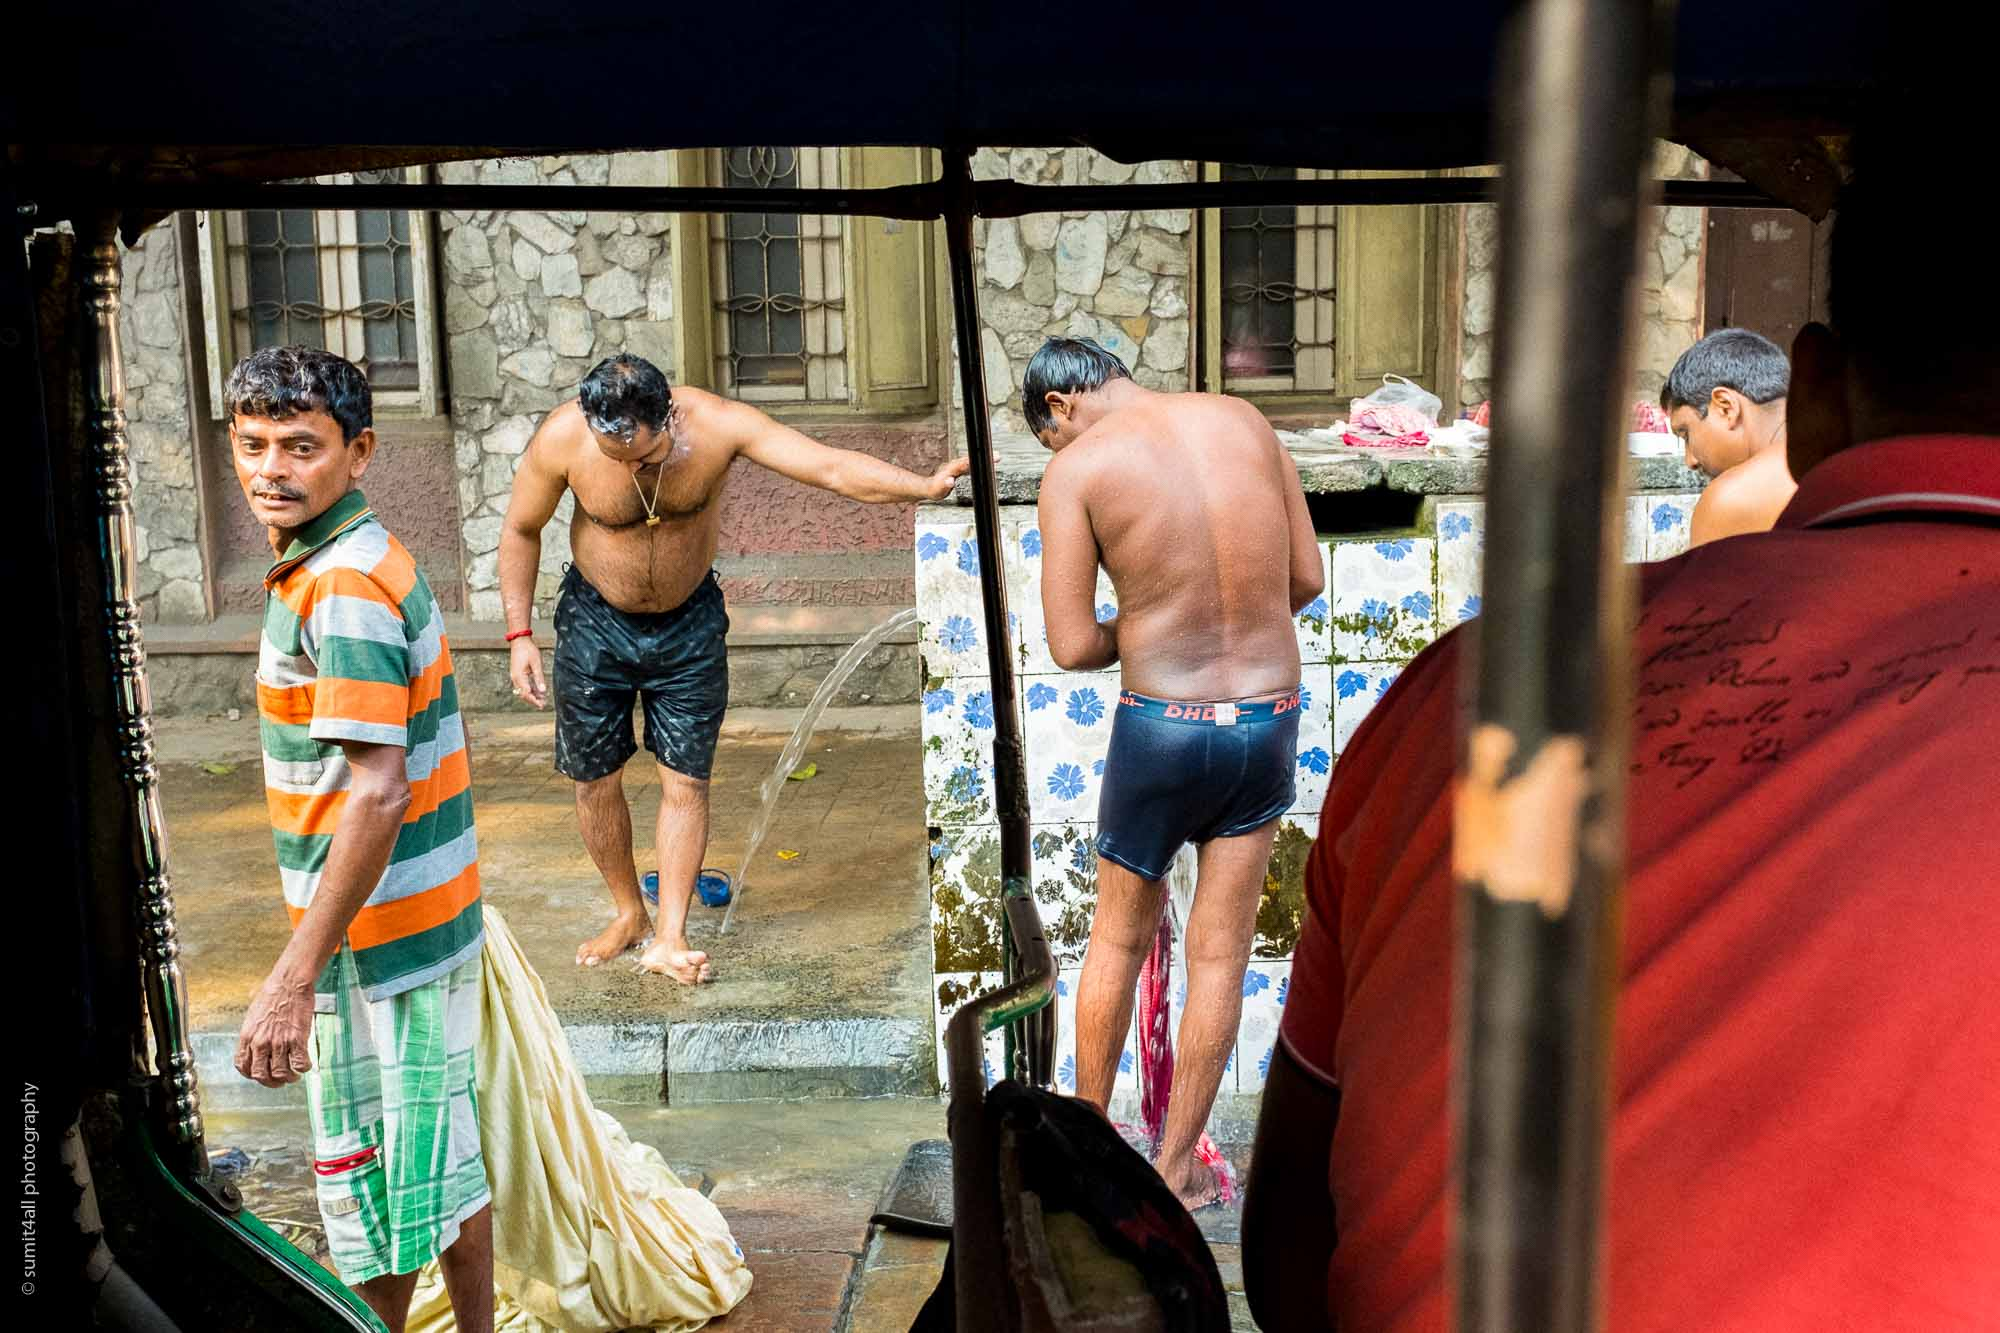 People bathing on the streets in Kolkata